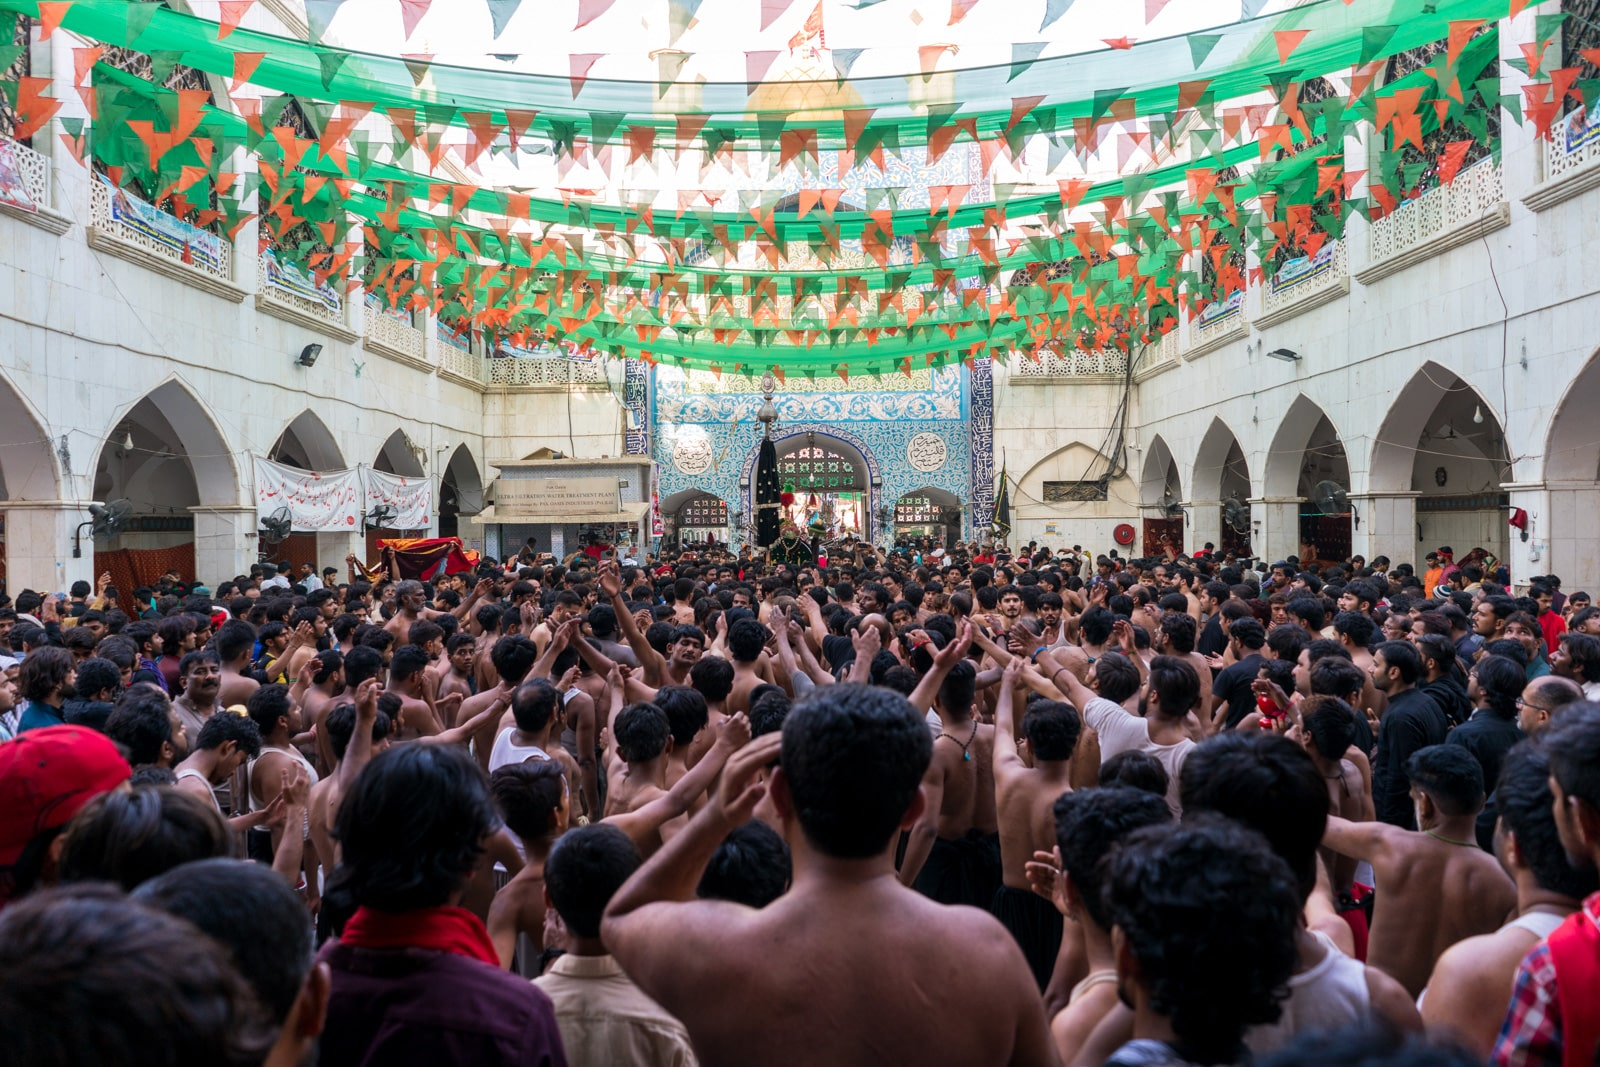 The Urs of Lal Shahbaz Qalandar in Sehwan, Pakistan - Crowd of Shias doing self flagellation outside the shrine - Lost With Purpose travel blog